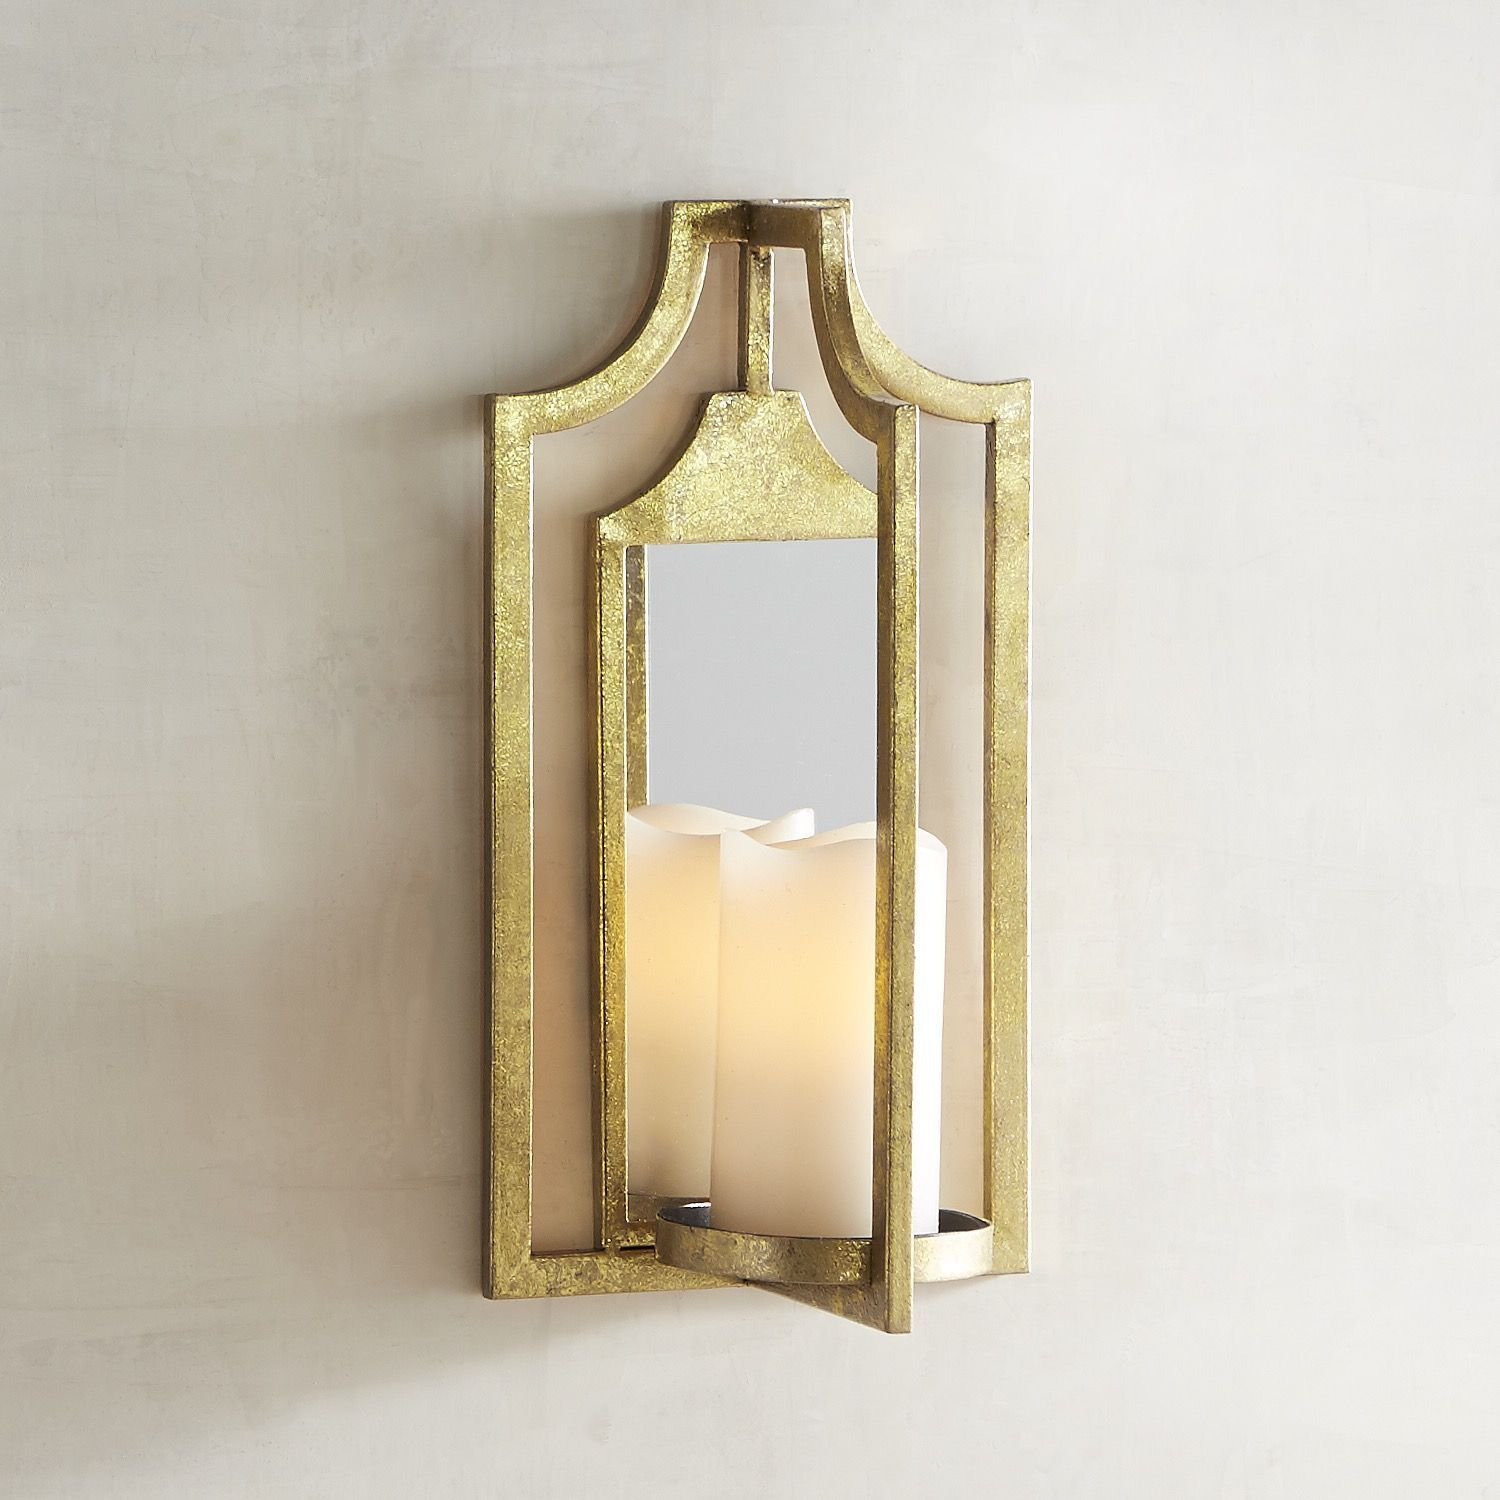 Alexander wall sconce candle holder gold lighting u candles